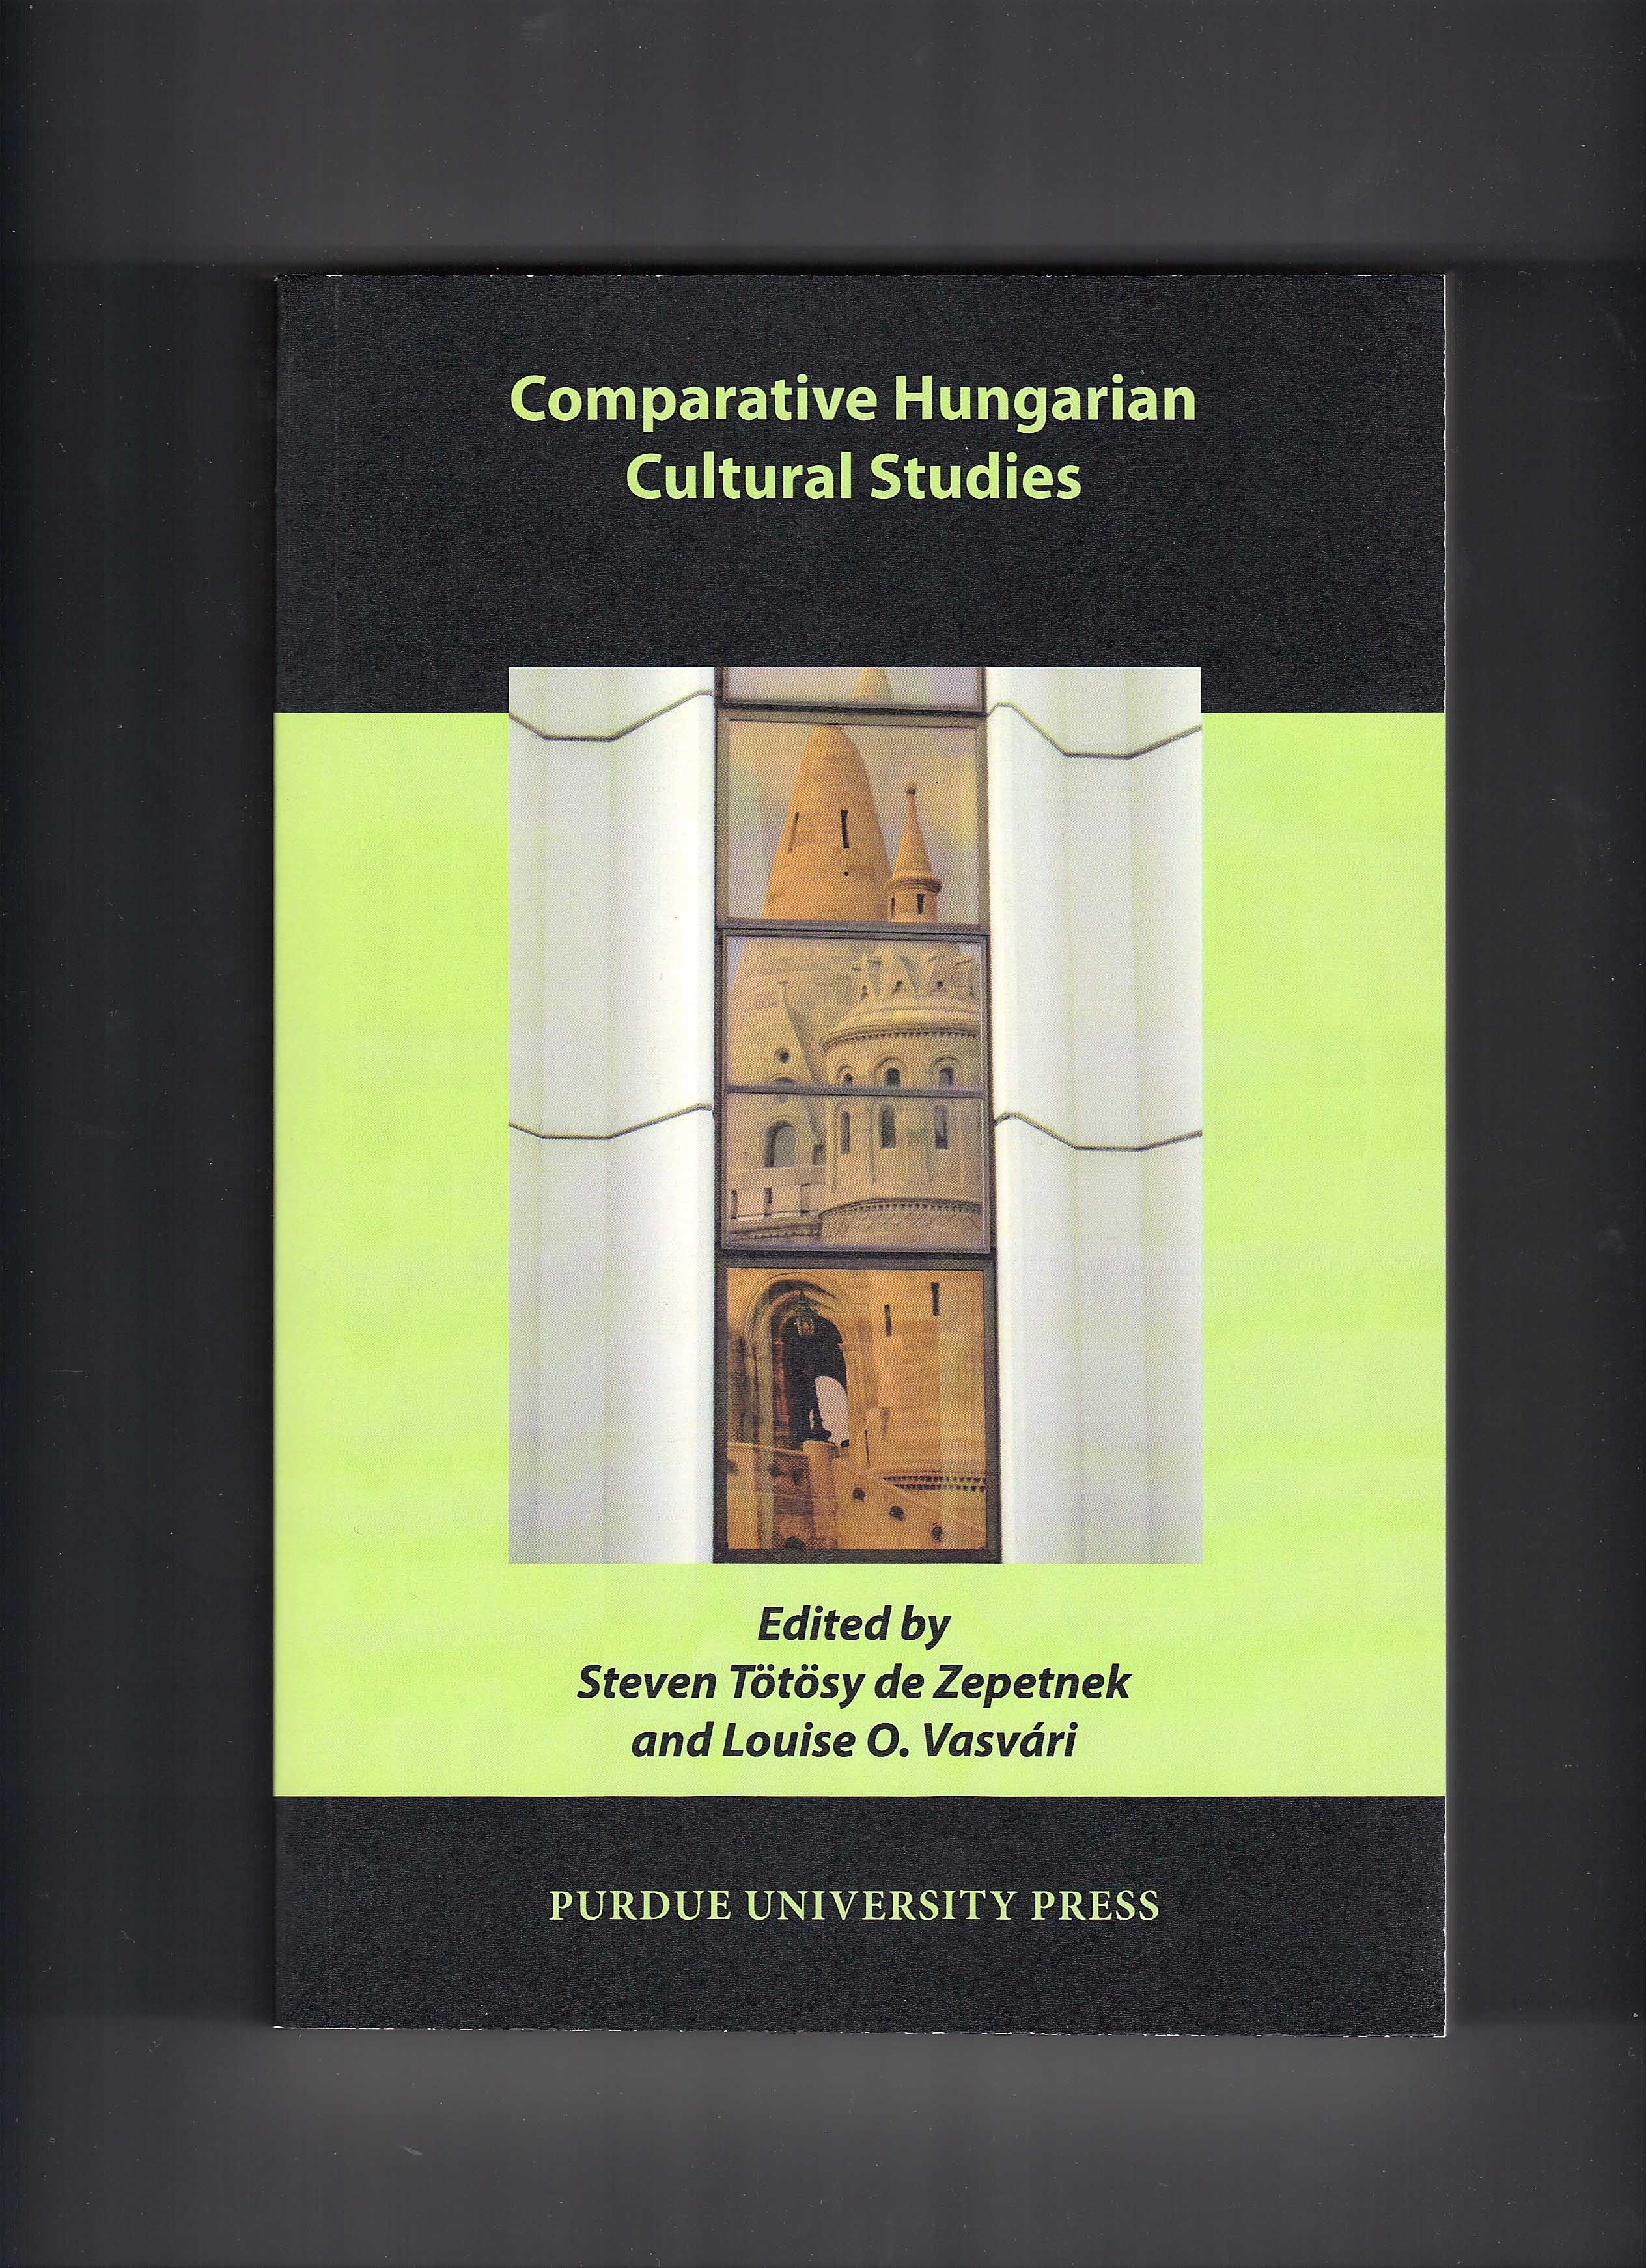 Comparative Hungarian Cultural Studies. Ed. Steven T�t�sy de Zepetnek and Louise O. Vasv�ri. West Lafayette: Purdue University Press, 2011.